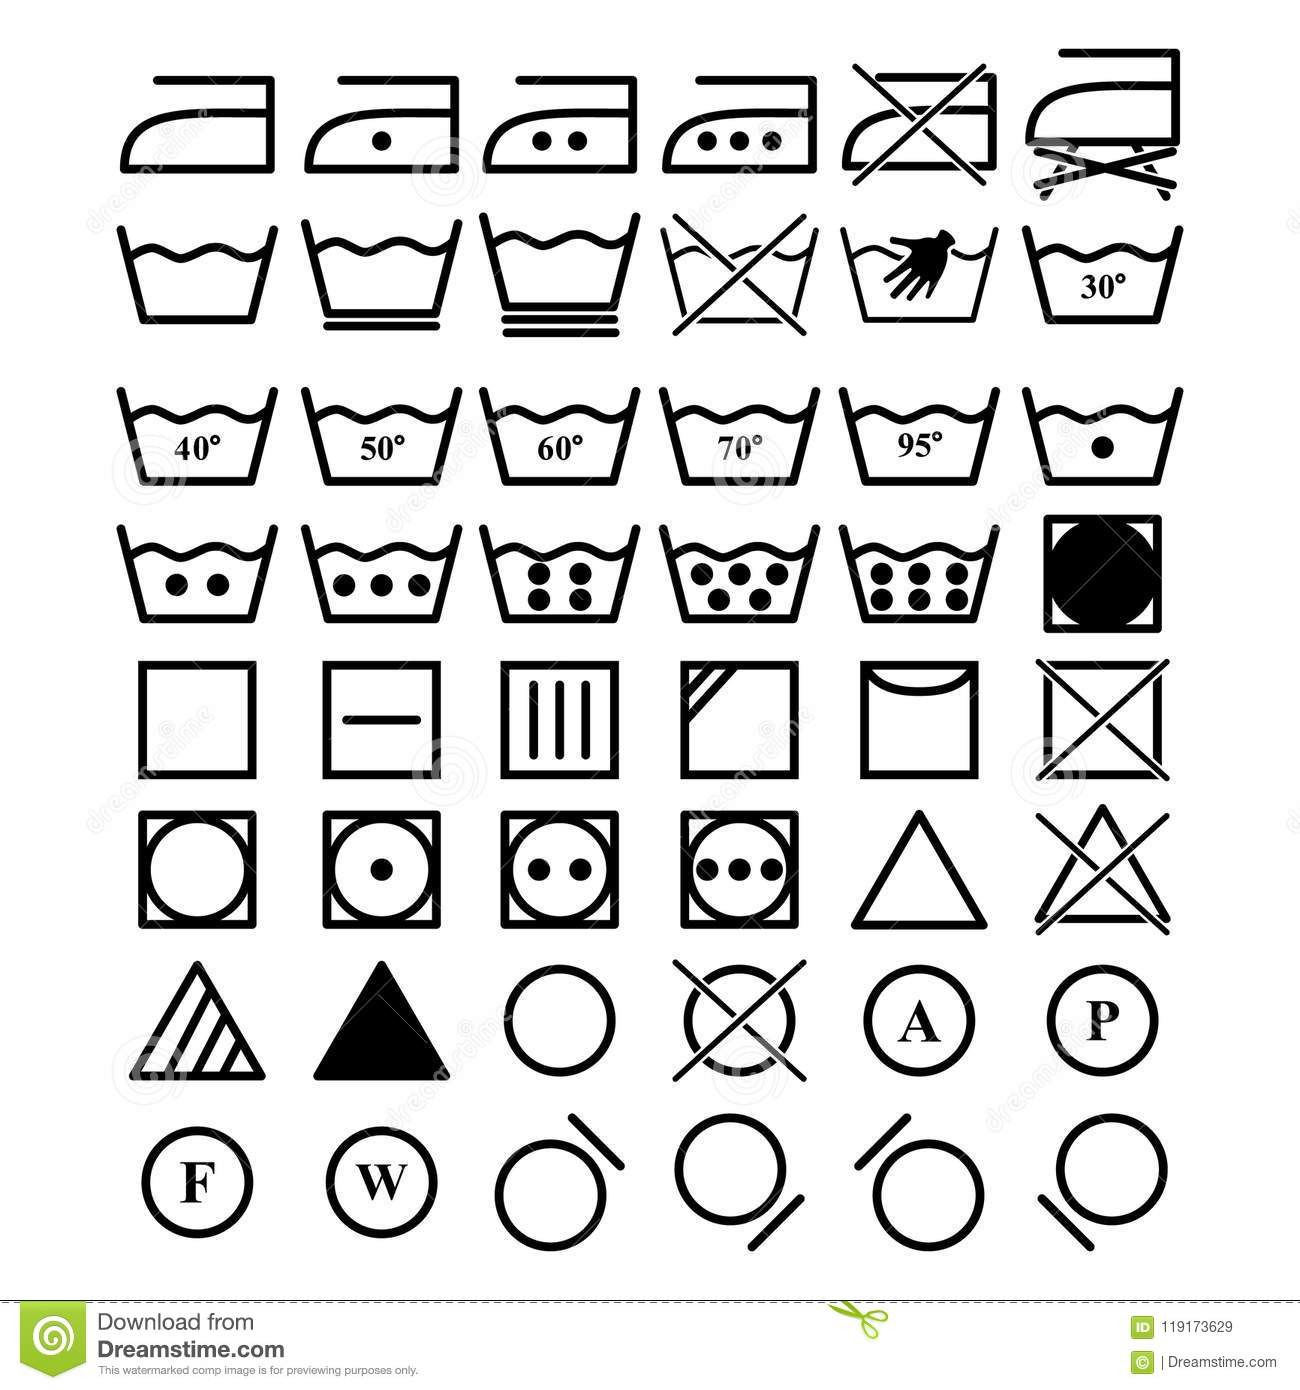 Laundry Symbols Collection Vector Illustration